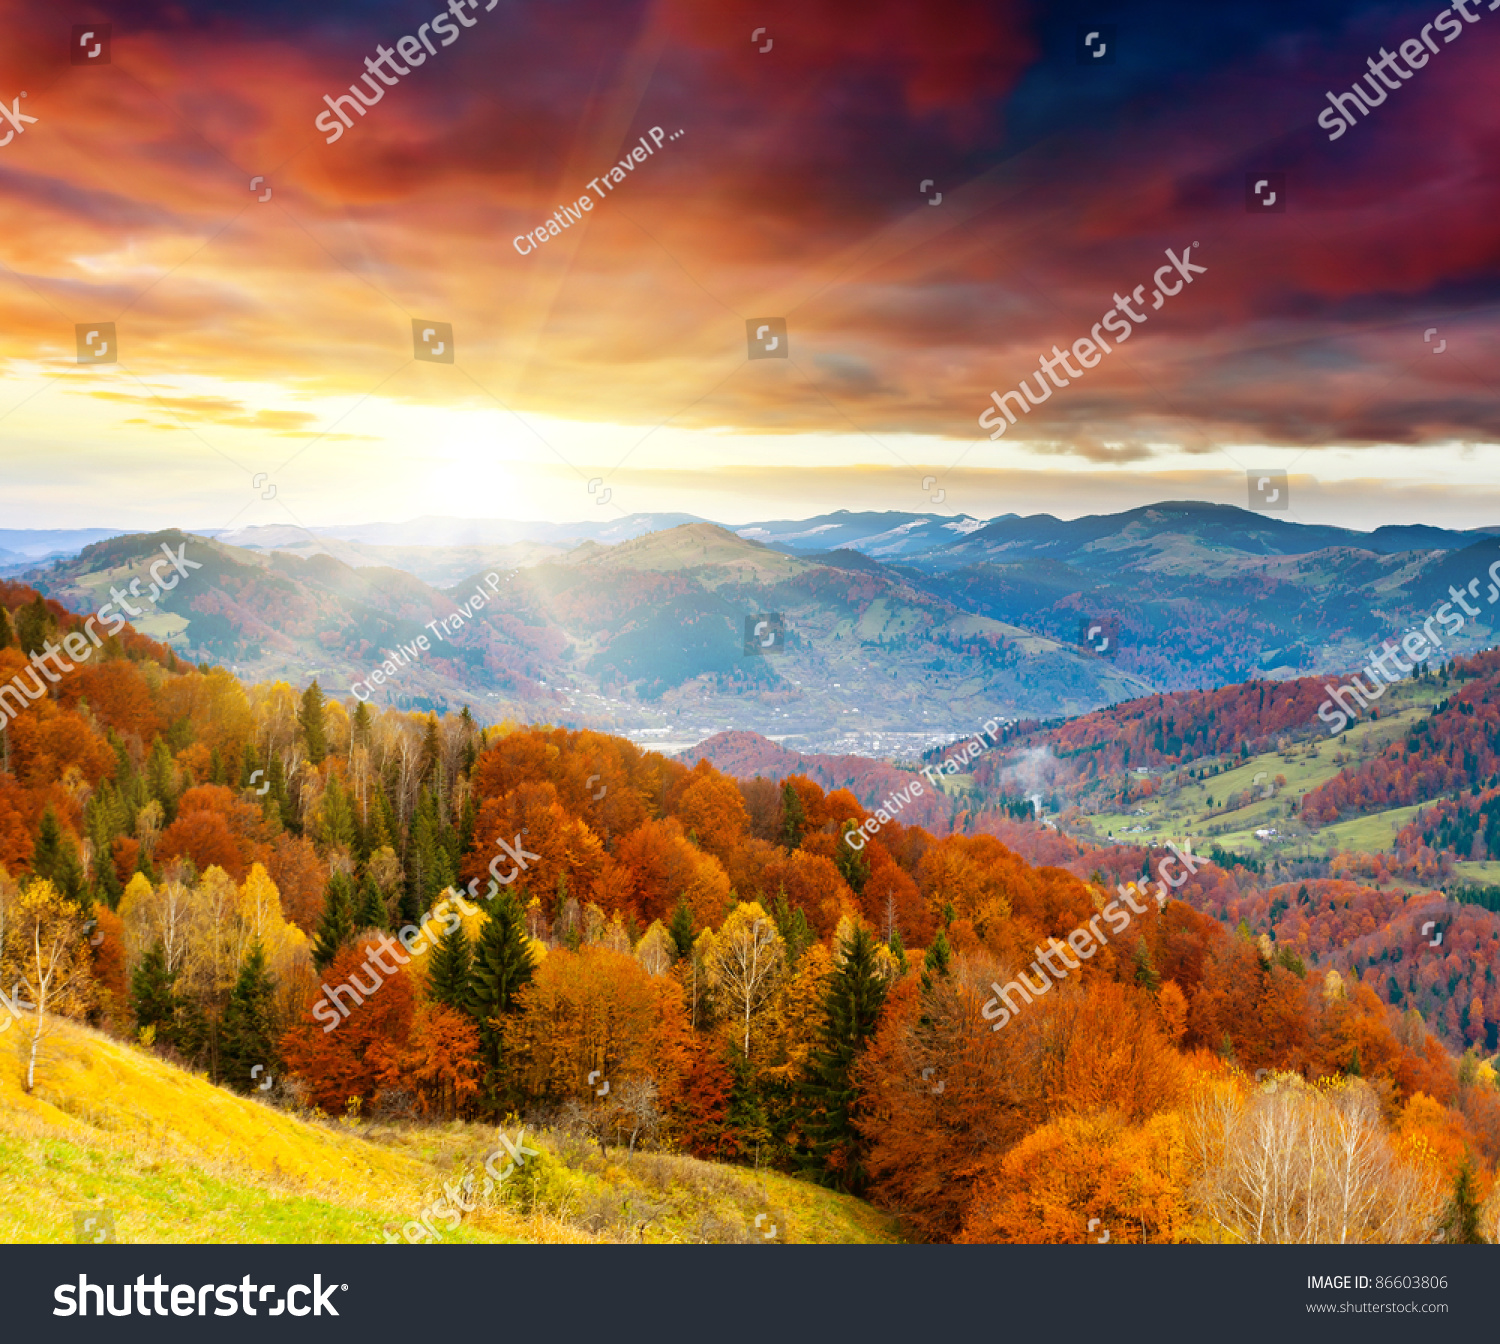 the mountain autumn landscape with colorful forest #86603806